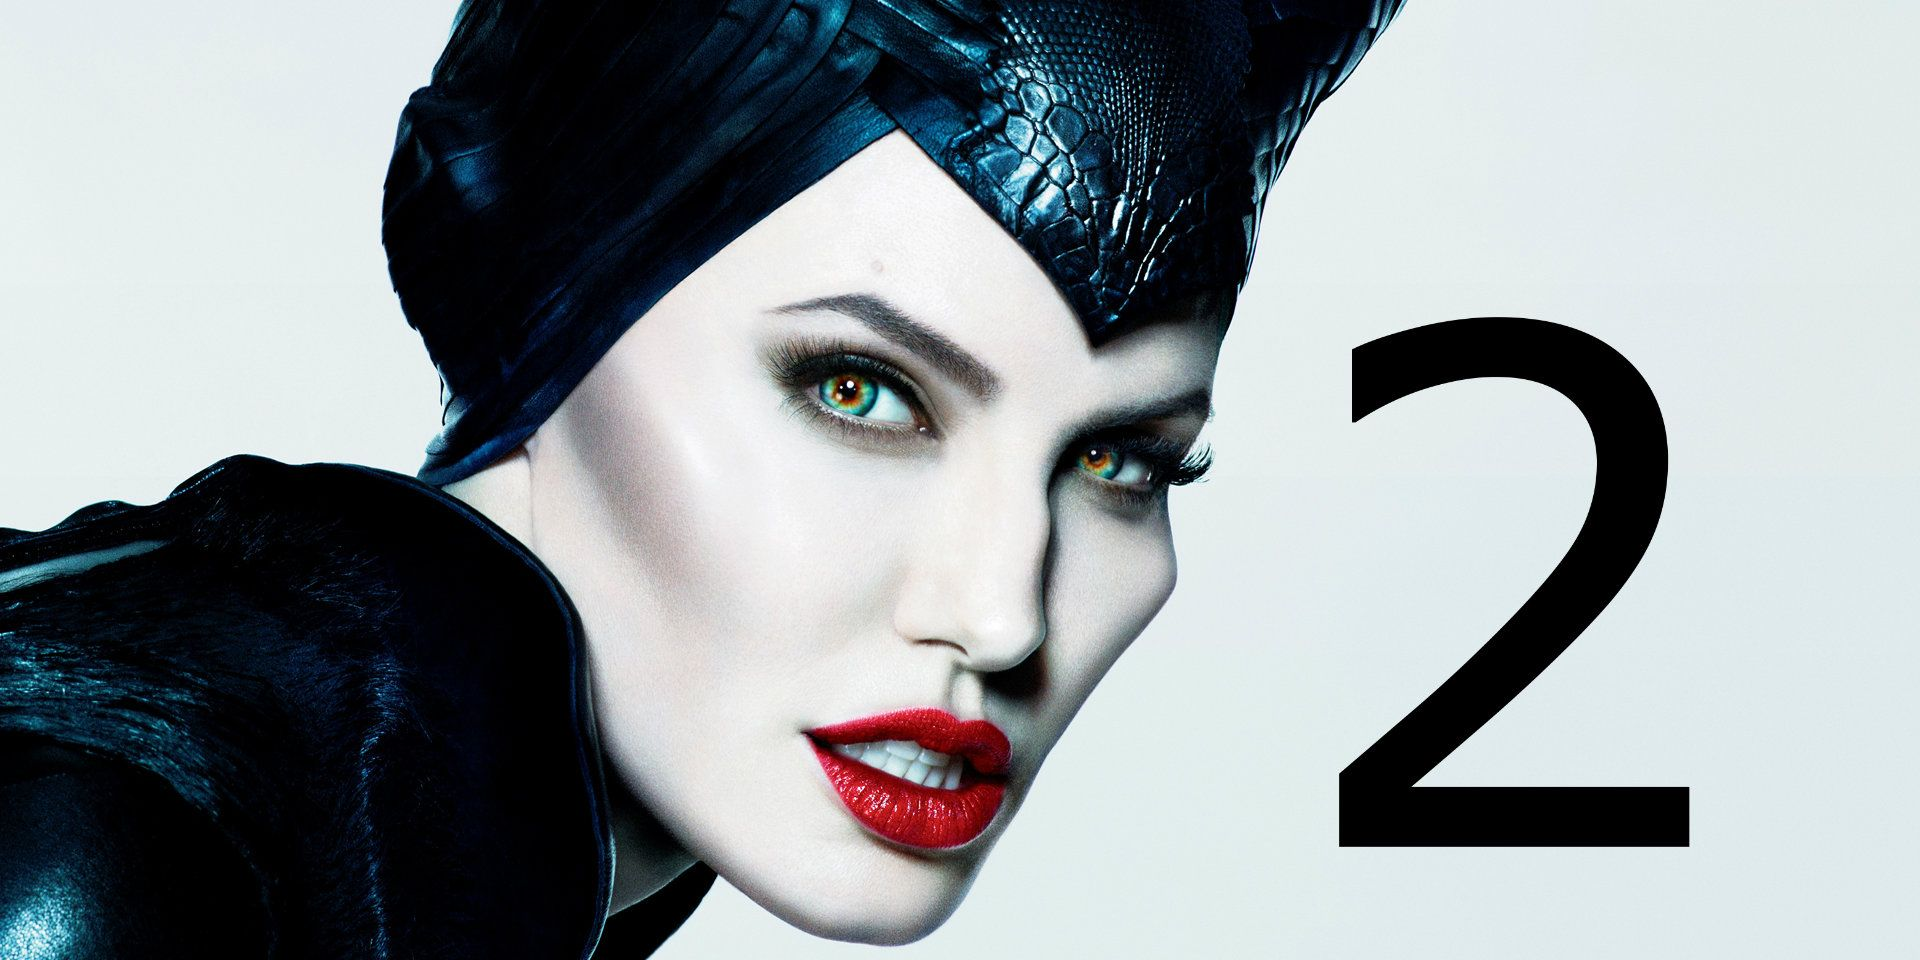 Maleficent 2 10 Questions We Still Have After Watching The